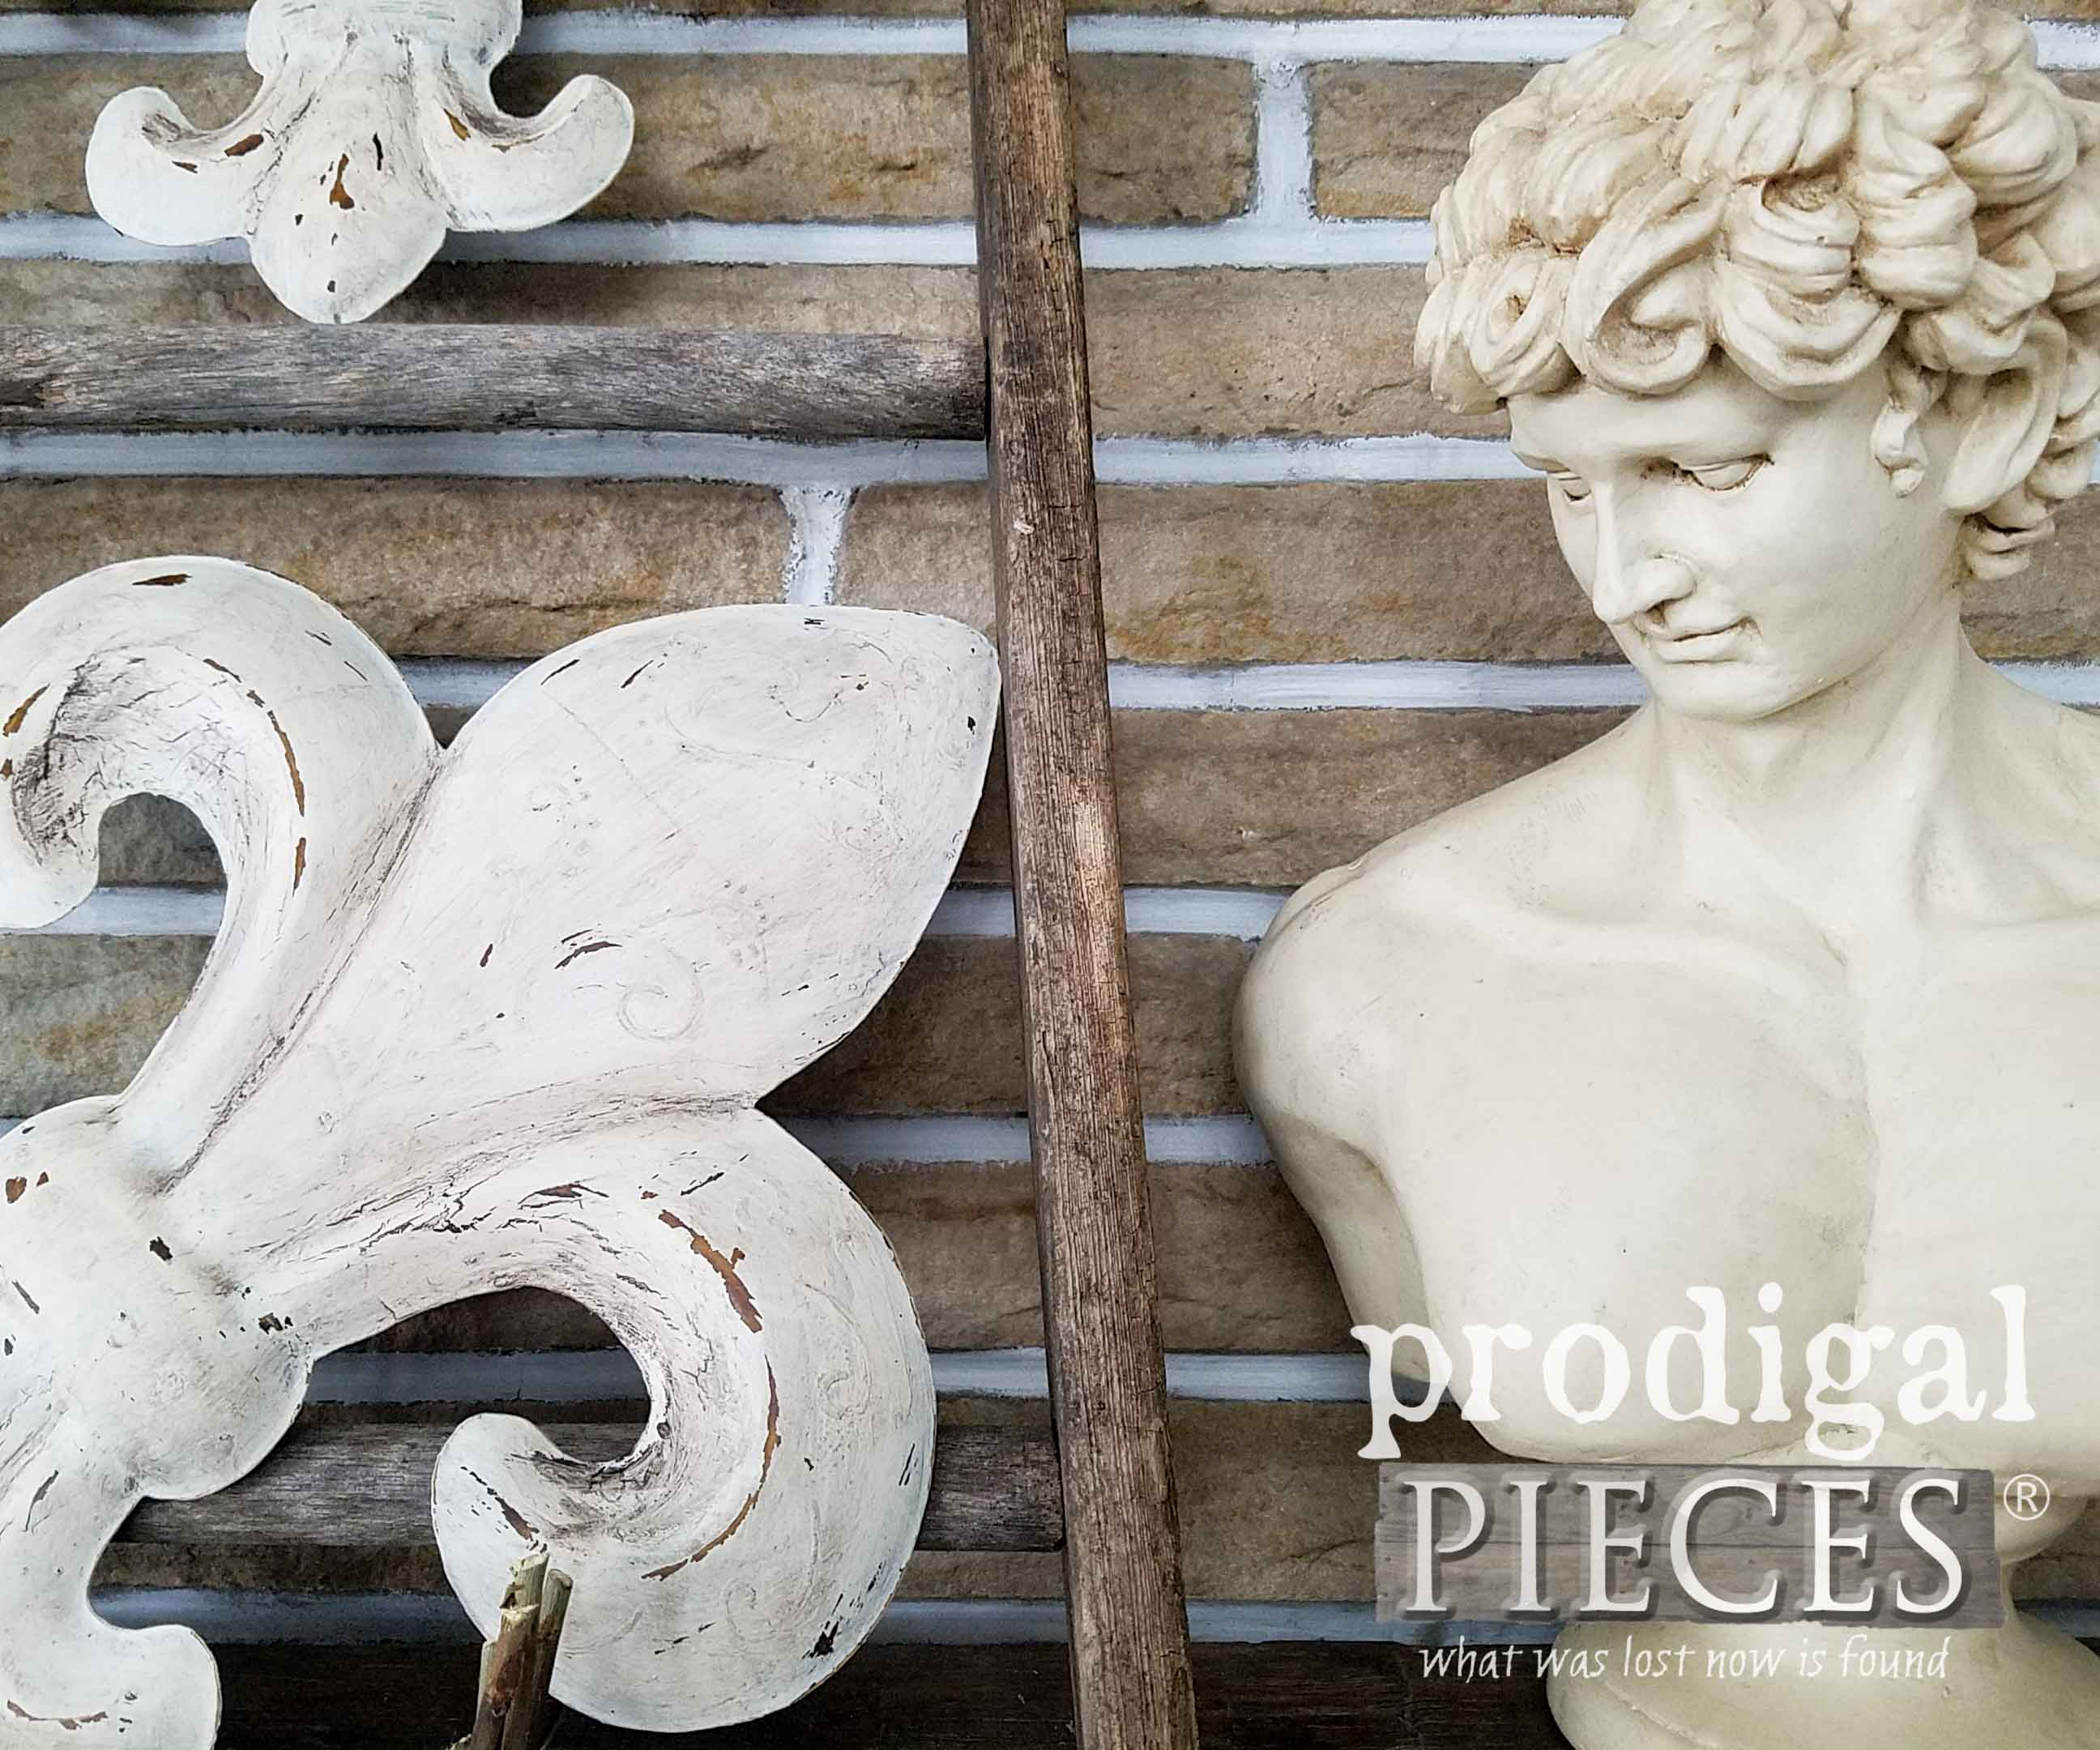 Thrifted David Bust on Farmhouse Chic Mantel by Prodigal Pieces | prodigalpieces.com